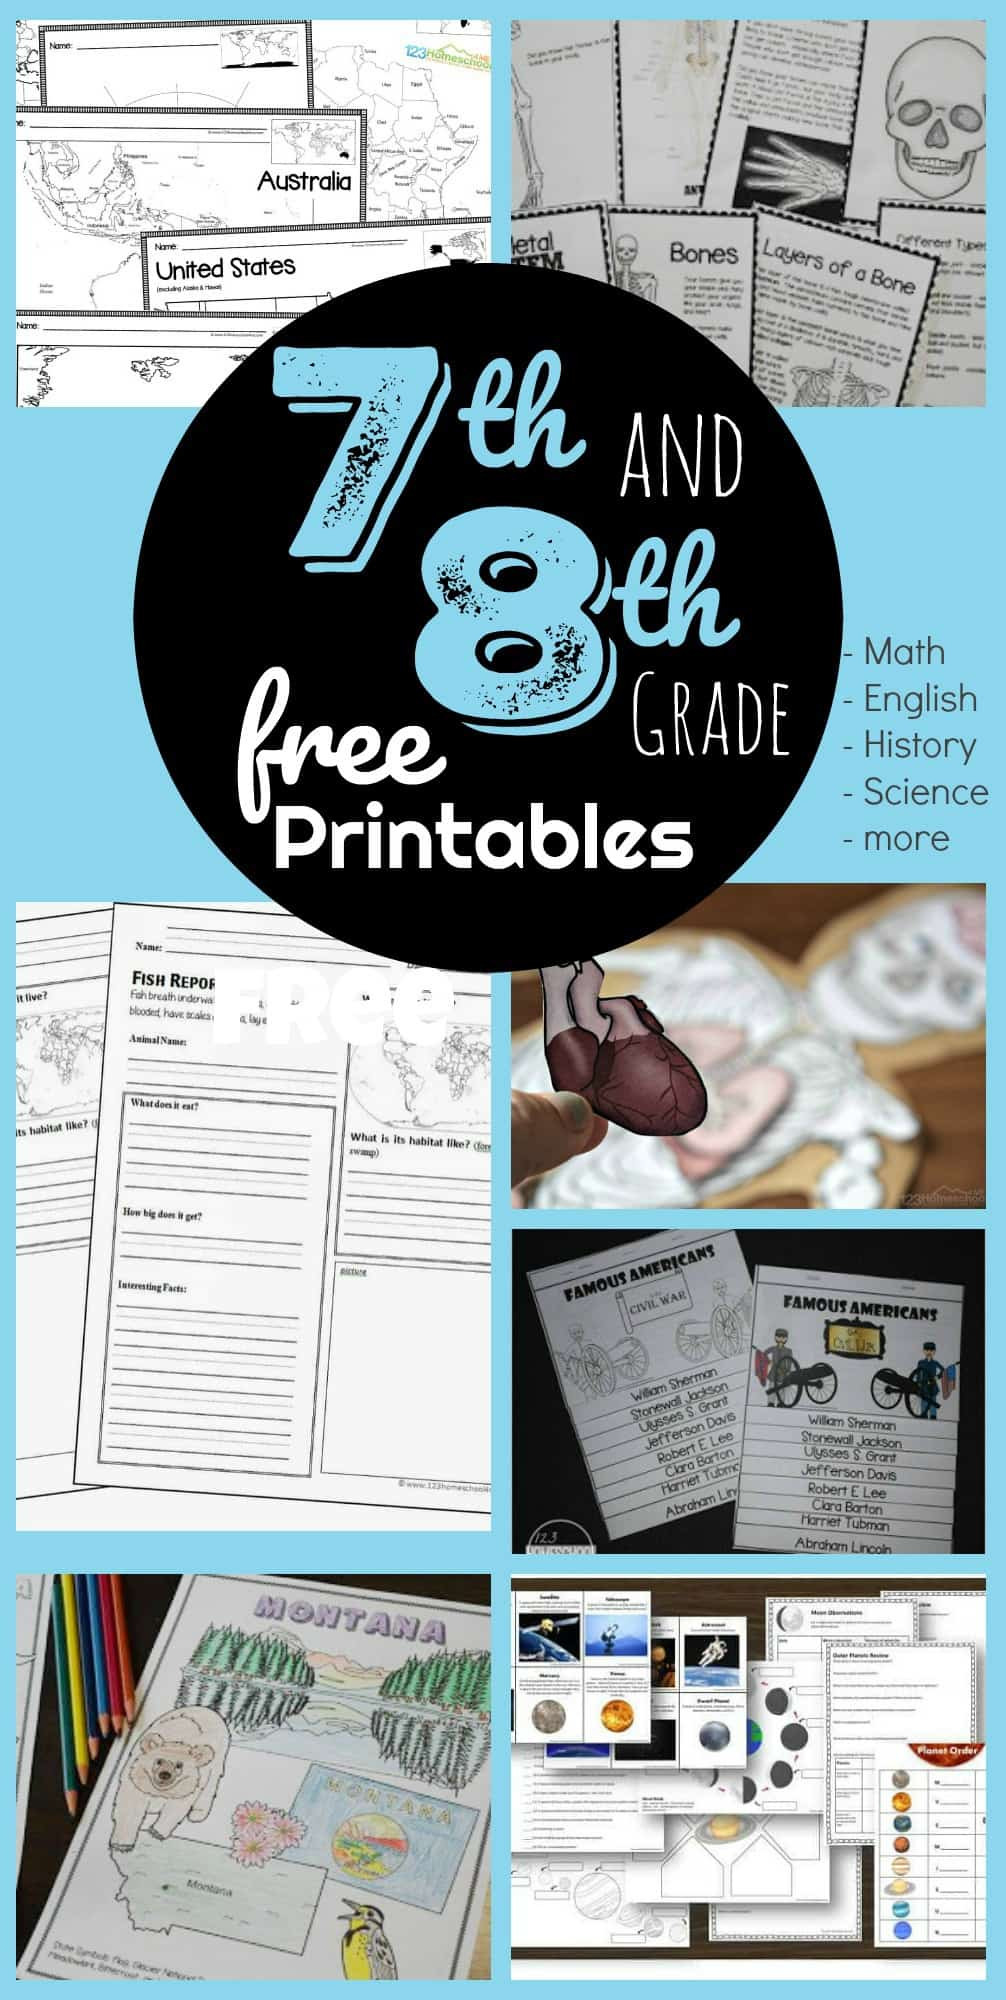 8th Grade Science Worksheets Pdf Free 7th & 8th Grade Worksheets